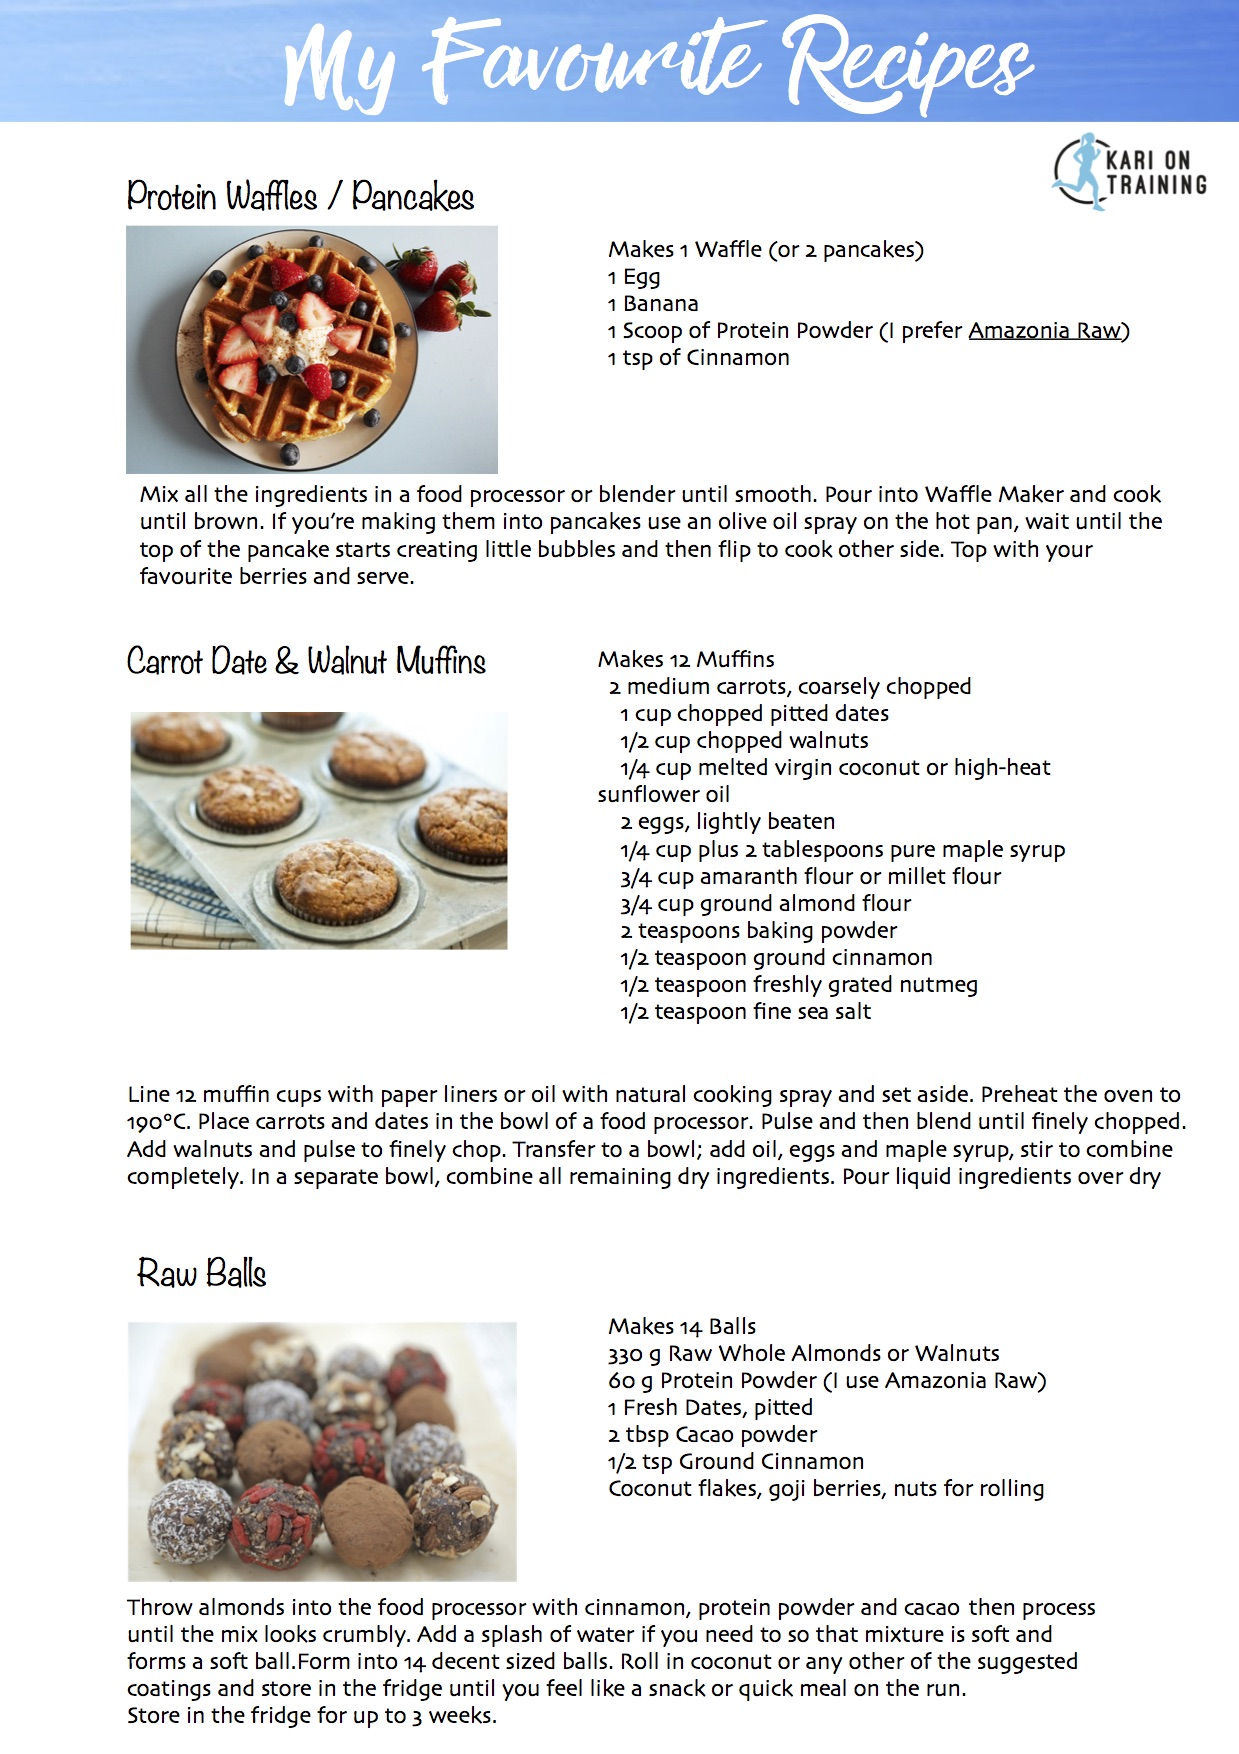 My Favourite Recipes copy 2.jpg